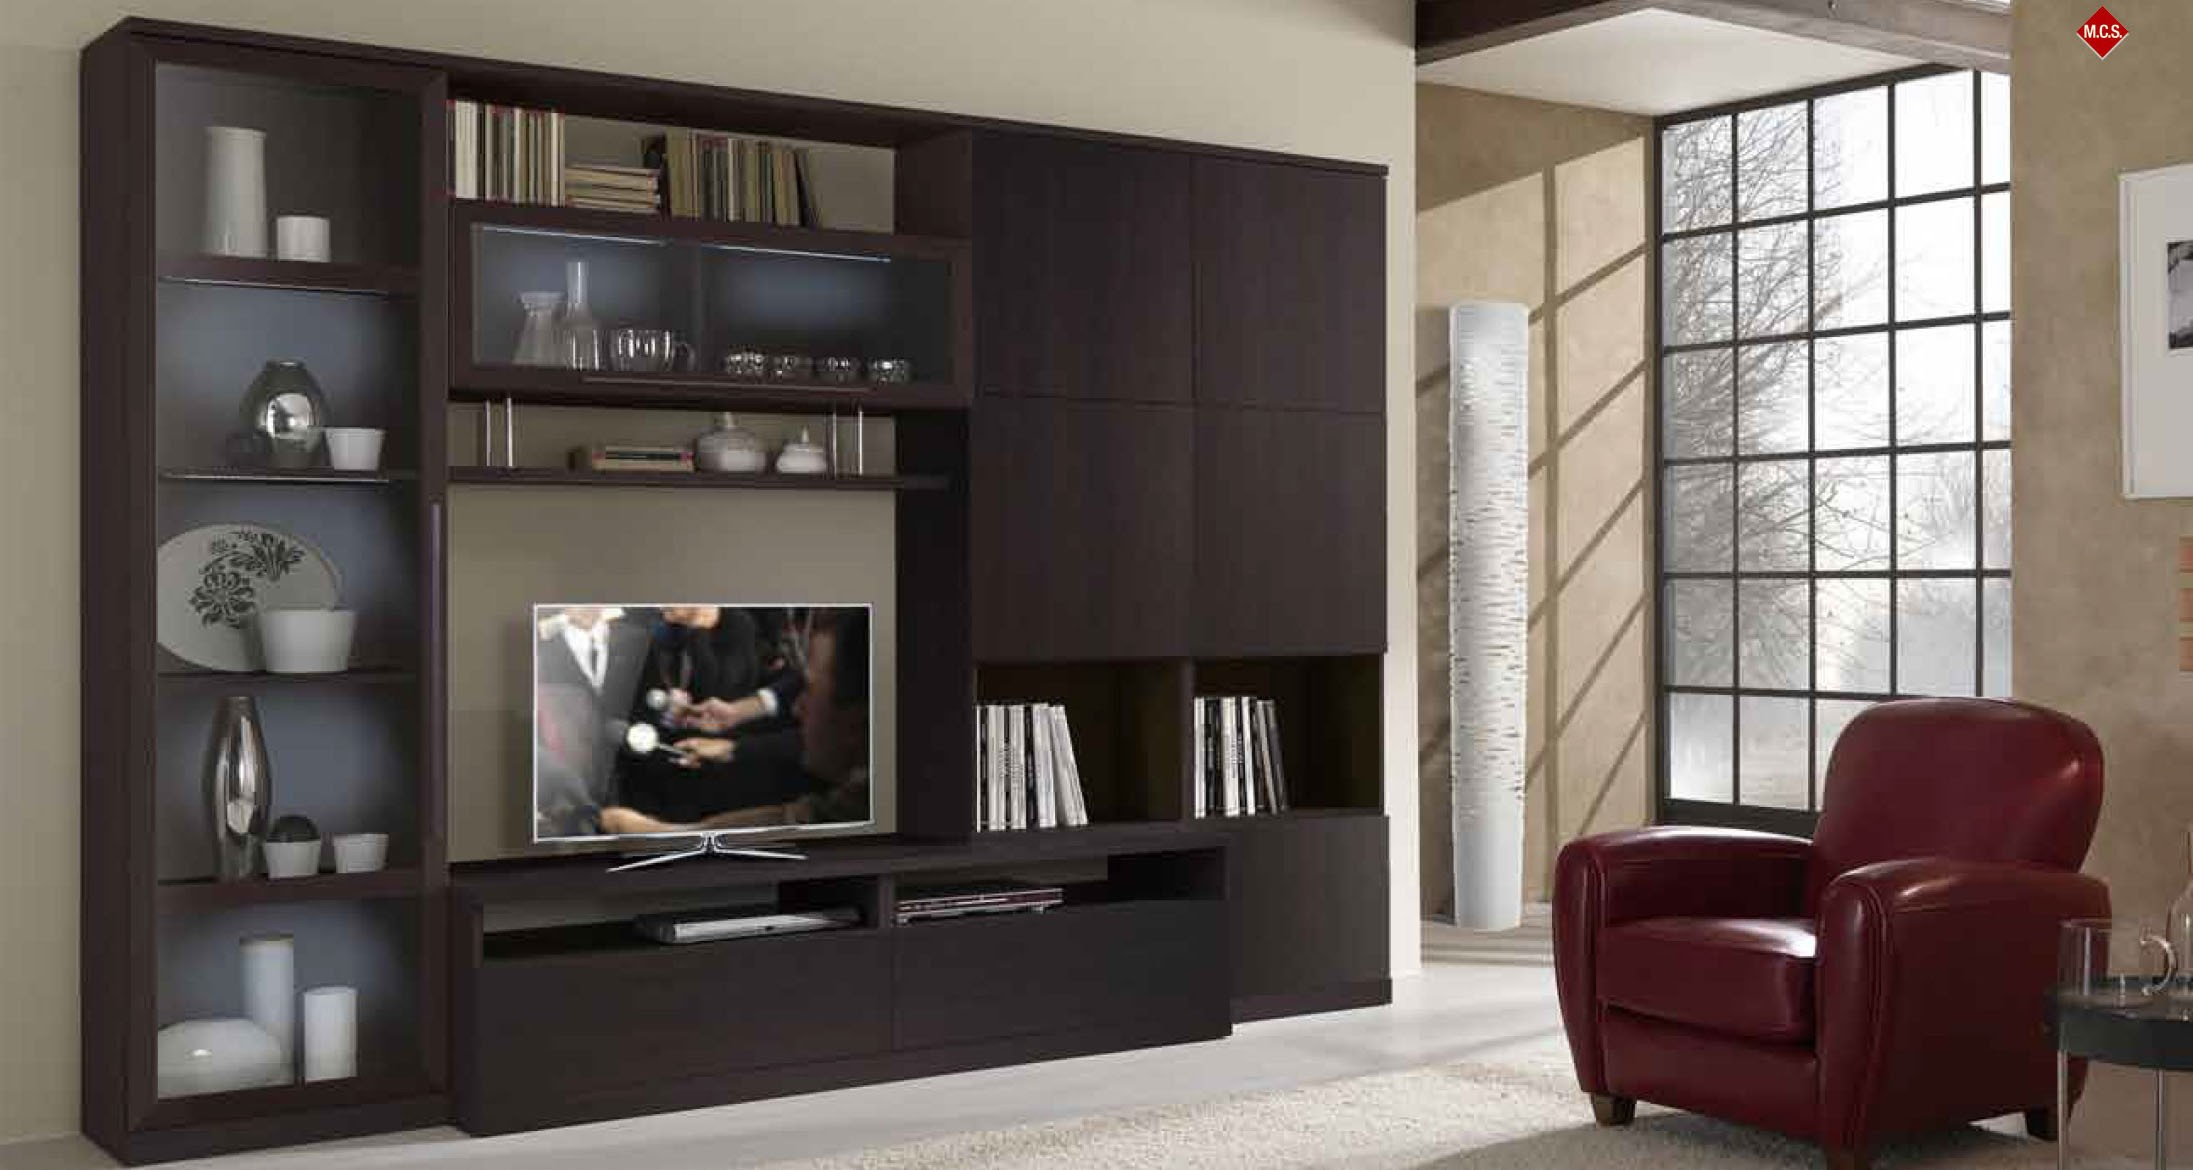 Tv Unit Ideas Wall Mounted Tv Unit Designs Tv Unit Design For Living Room Tv  Cabinet